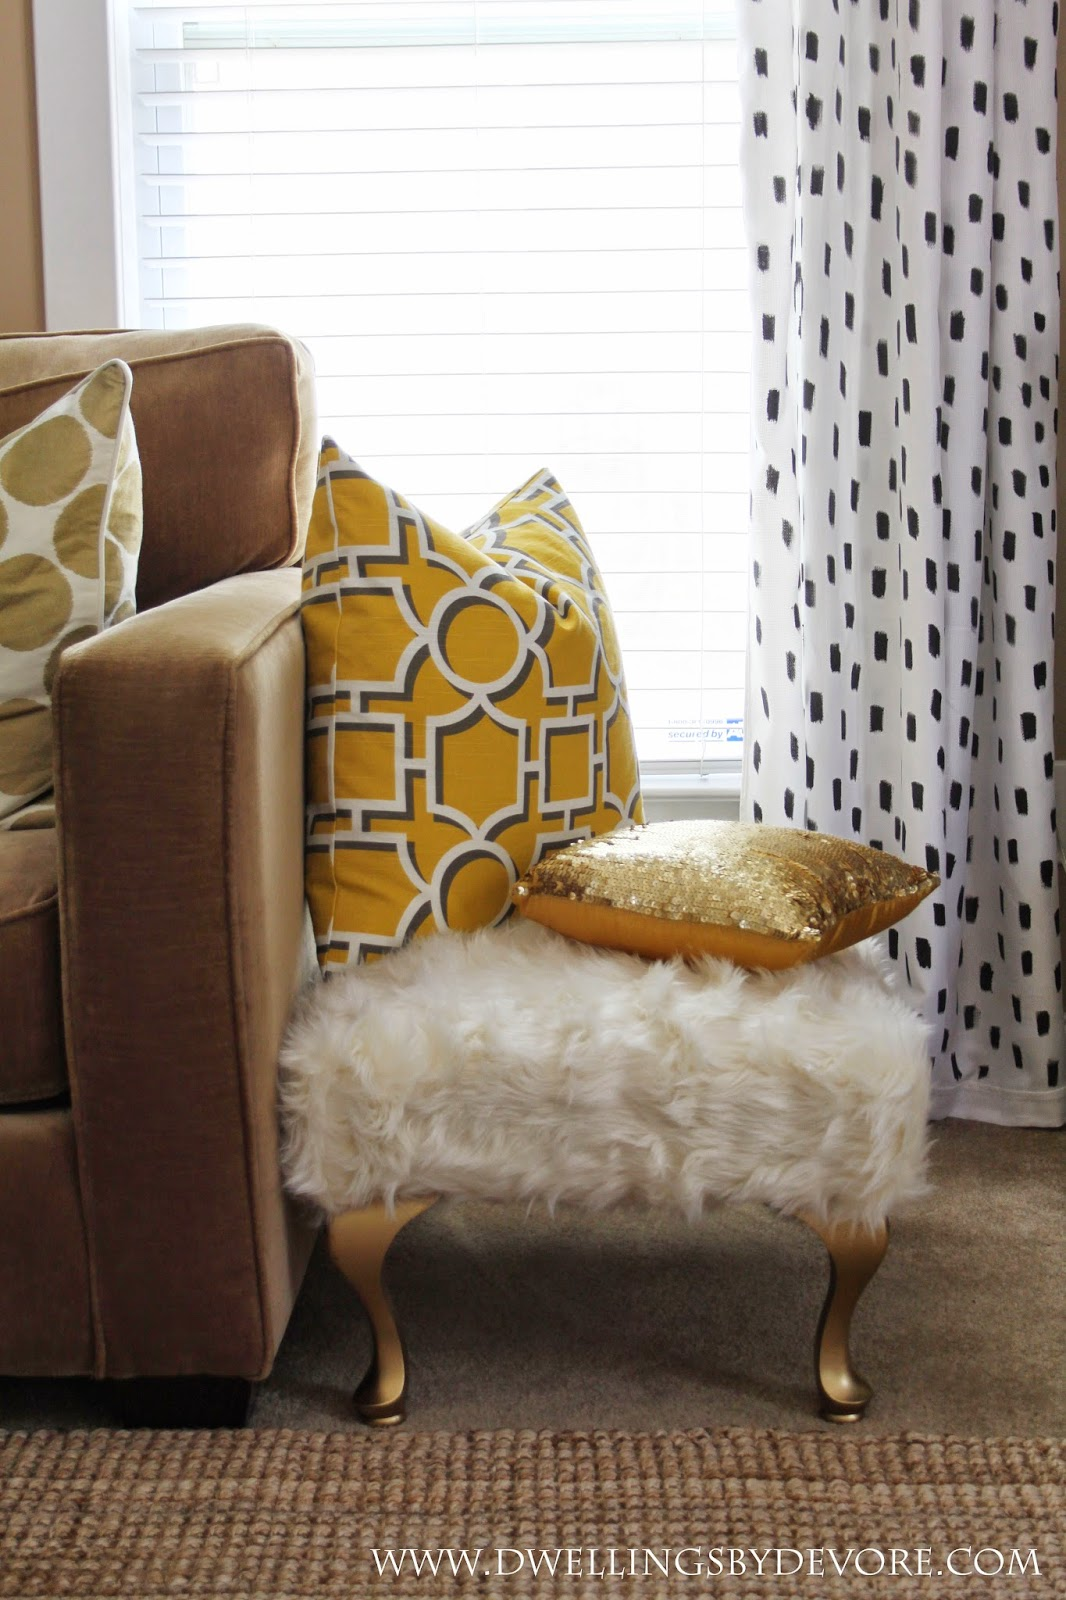 Dwellings By Devore Upholstered Faux Fur Bench